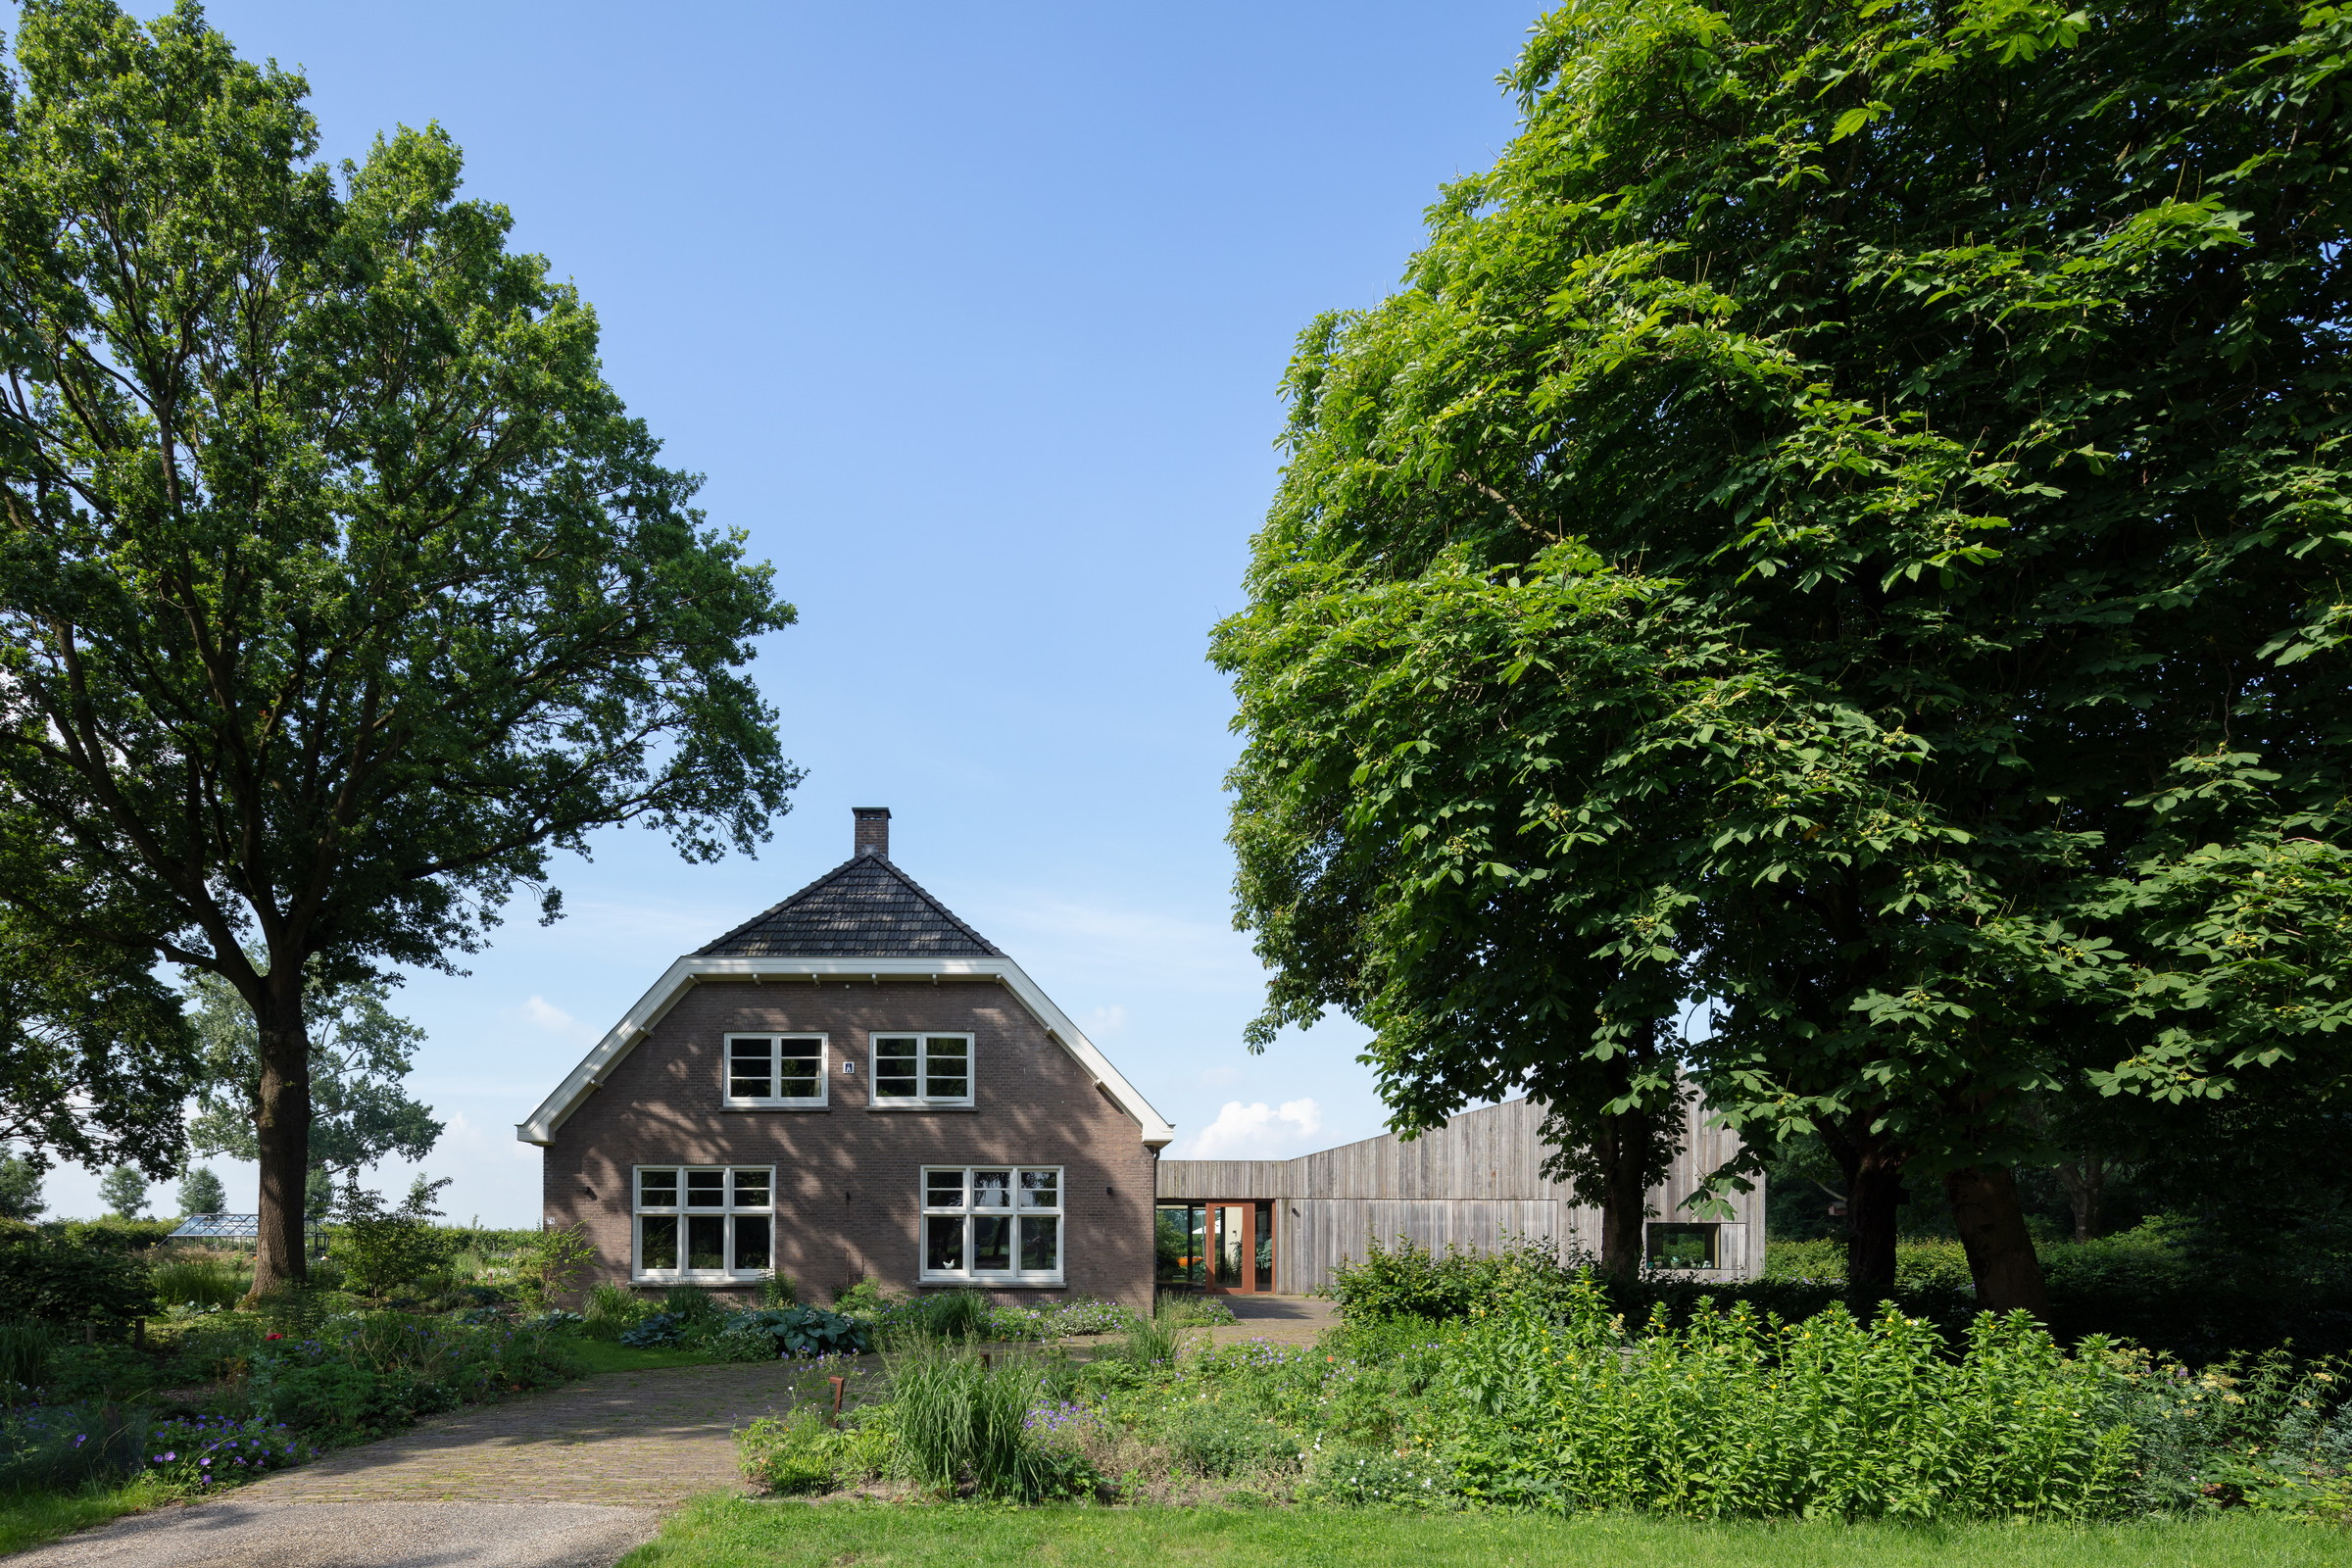 06-Zecc_Architecten-Farm_house-Utrecht-wood-concret.JPG